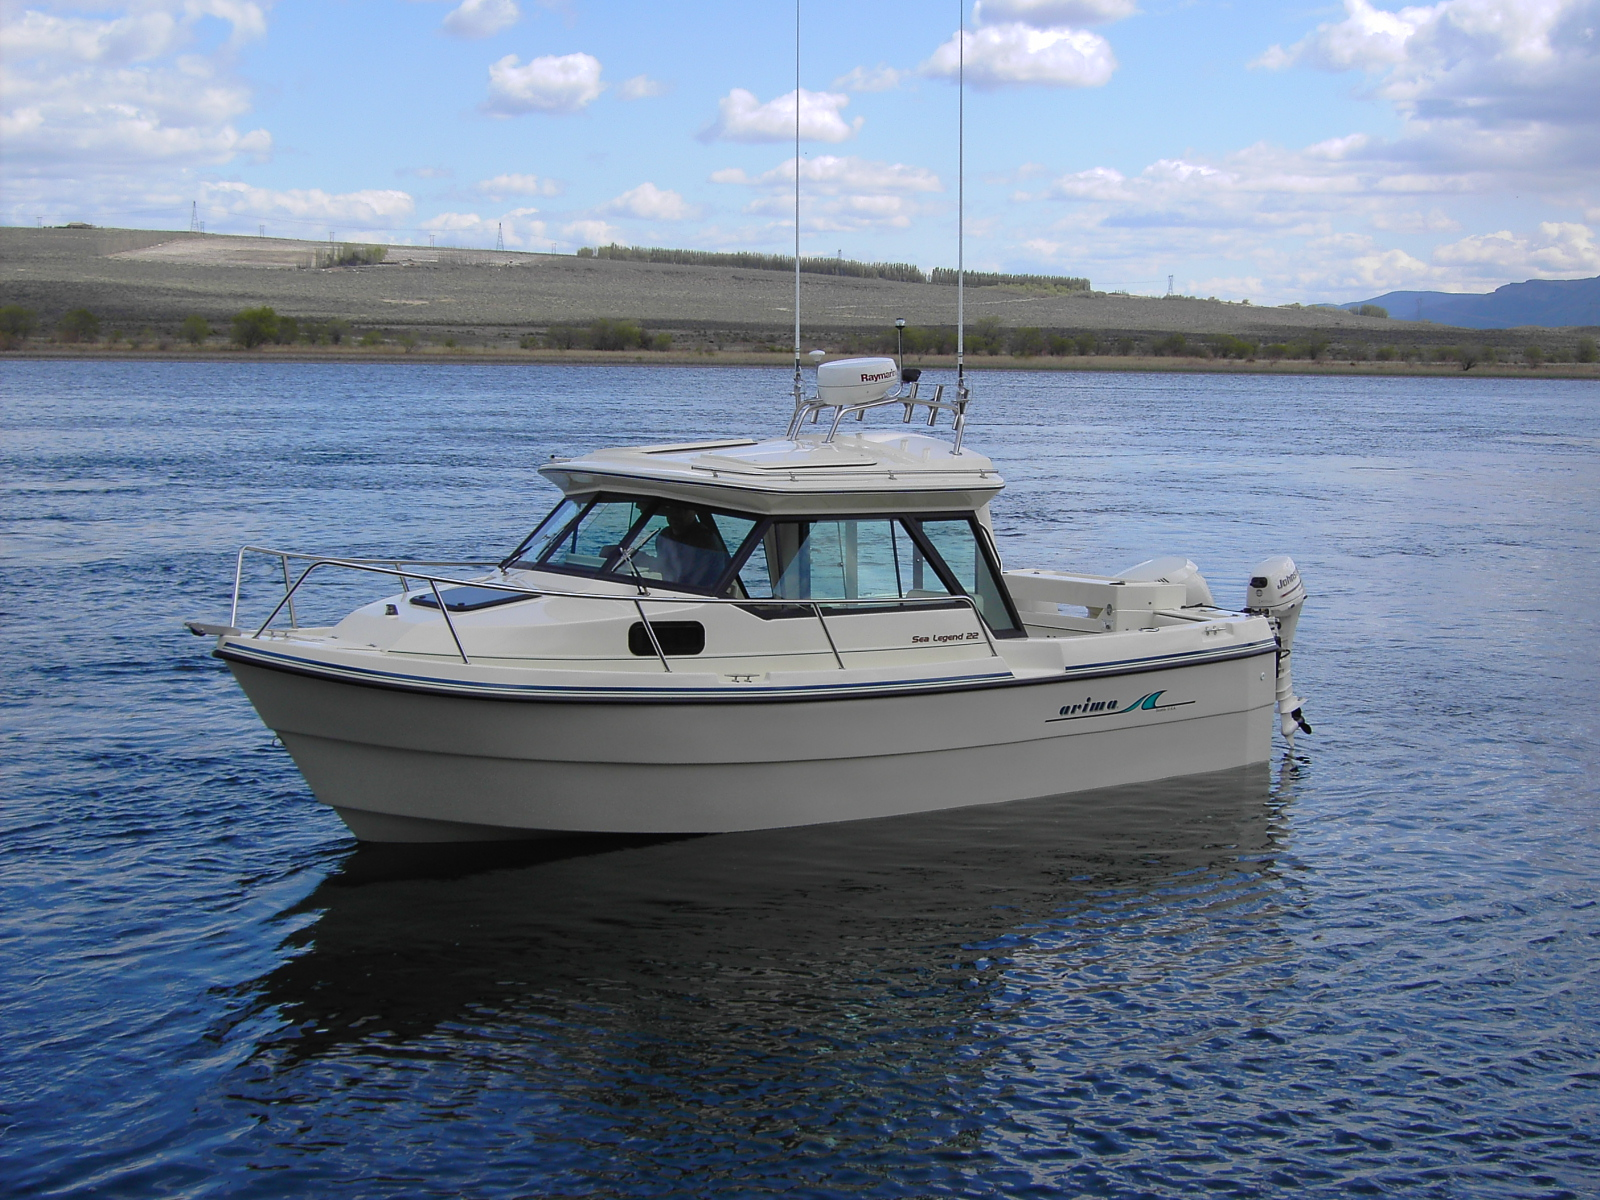 22' Arima Sea Legend Hard Top is a very open space oriented cabin boat. With the cabin construction designed to provide comfort for the fisherman and to ...